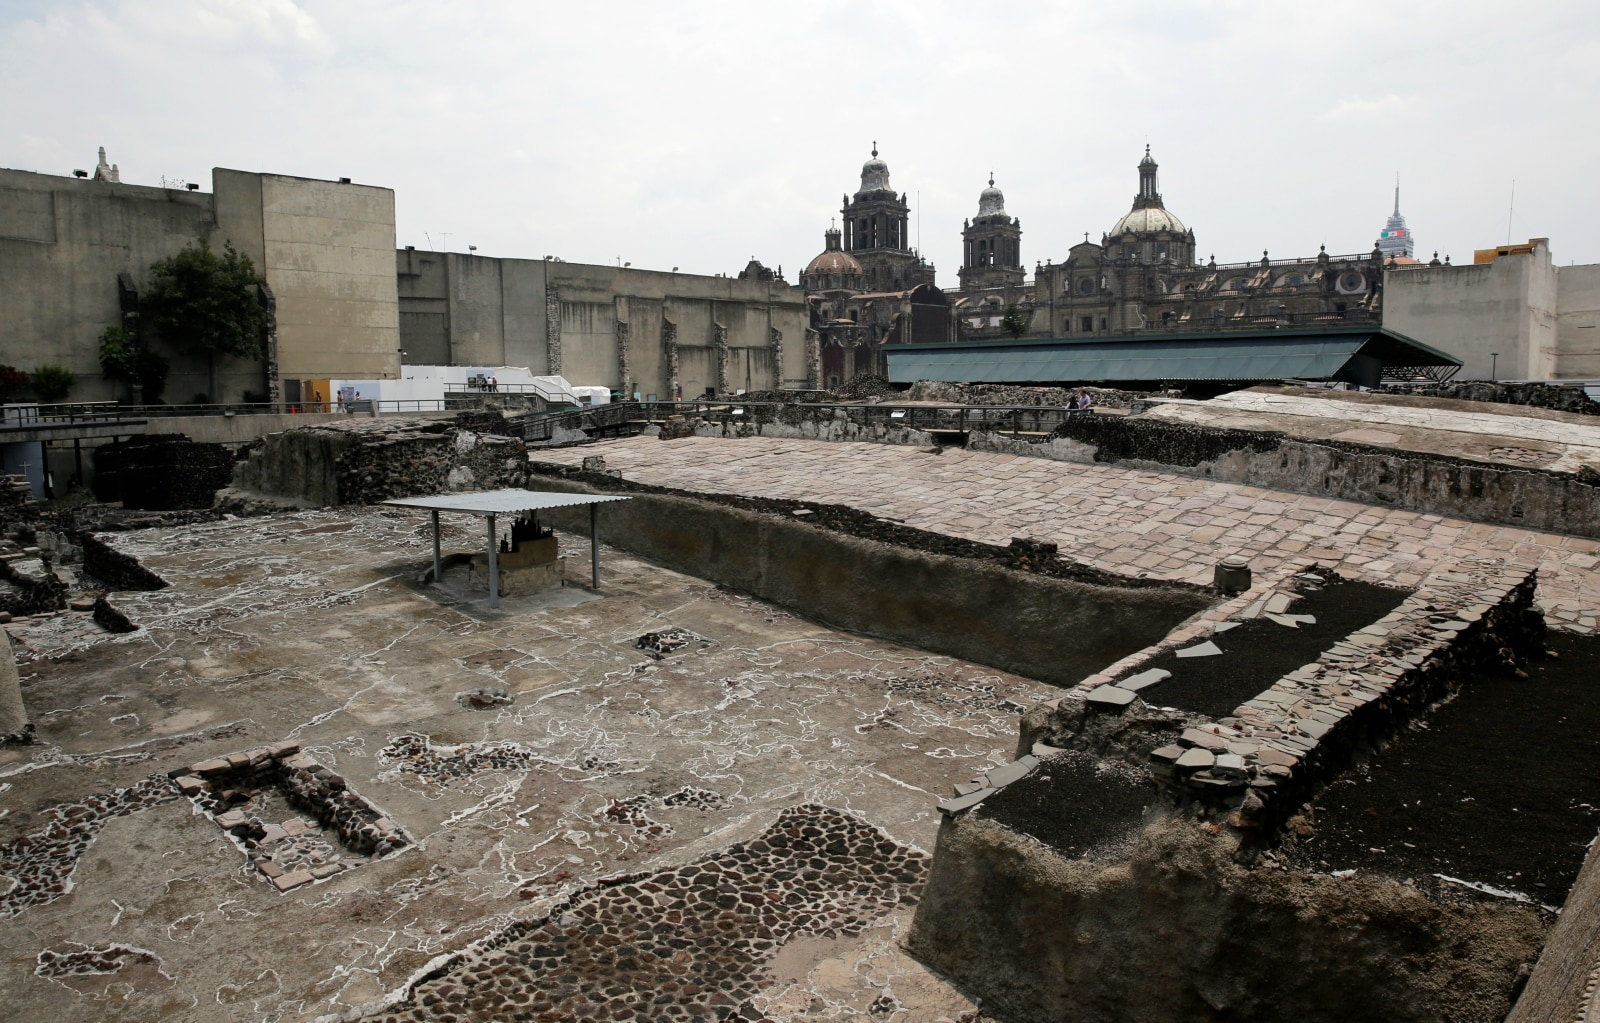 A general view of the ruins of the Aztecs' most important temple, known as the Templo Mayor, where the latest sacrificial offerings were found in downtown Mexico City, Mexico June 7, 2017. REUTERS/Henry Romero